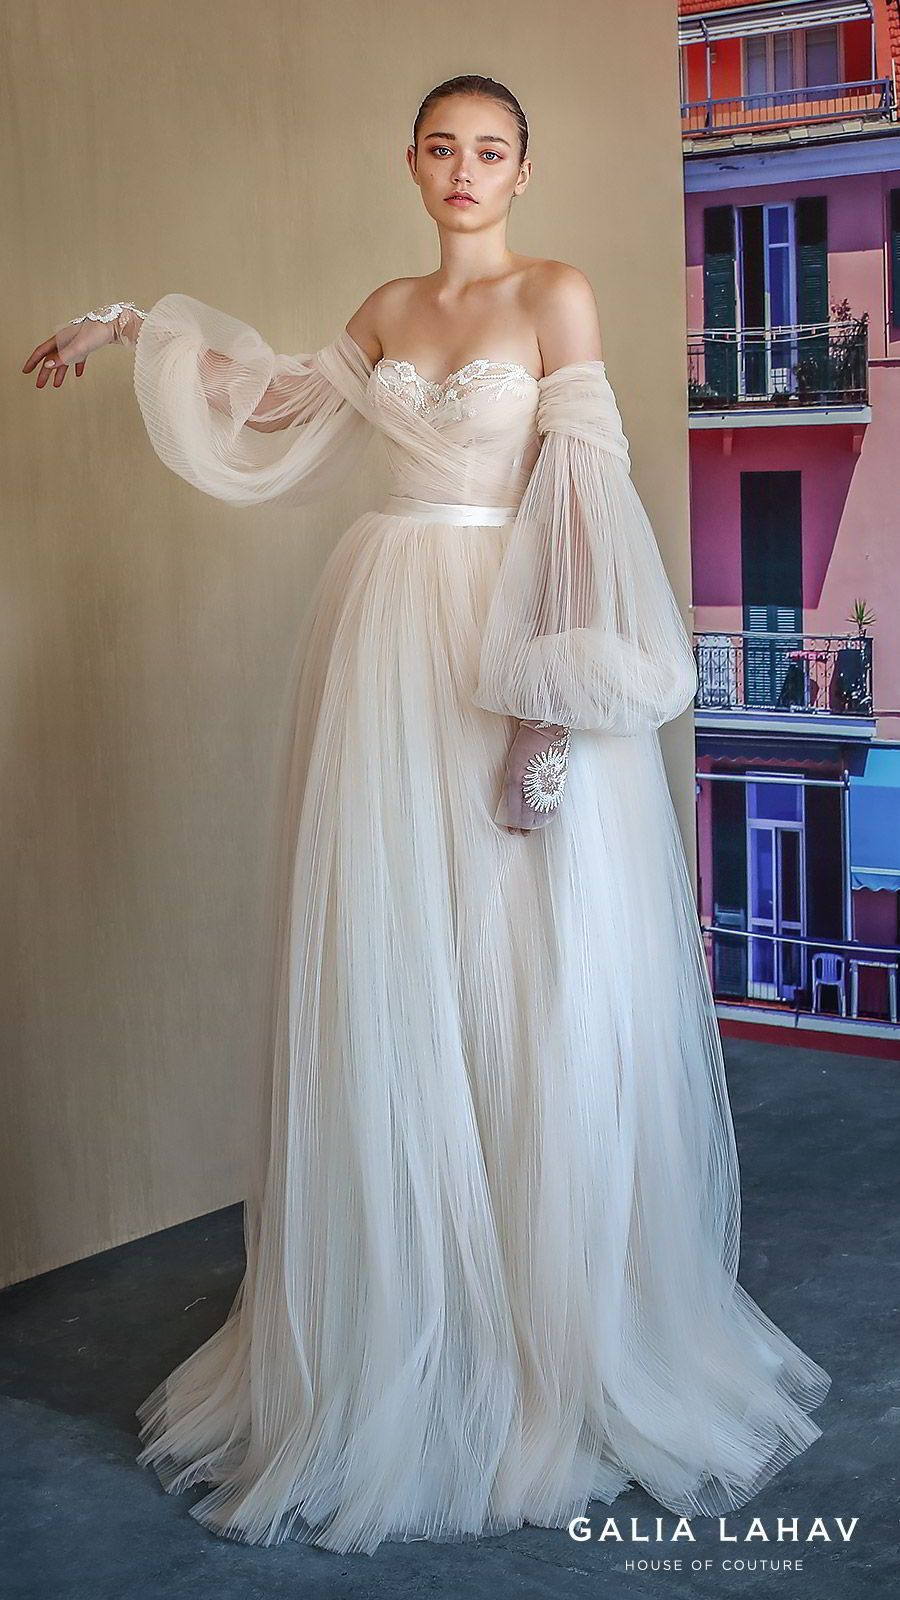 Galia Lahav Fall 2019 Bridal Wedding Dress    off shoulder sheer balloon  sleeves sweetheart neckline lace bodice pleated ball gown wedding dress  sweep train ... 318b70681fa4